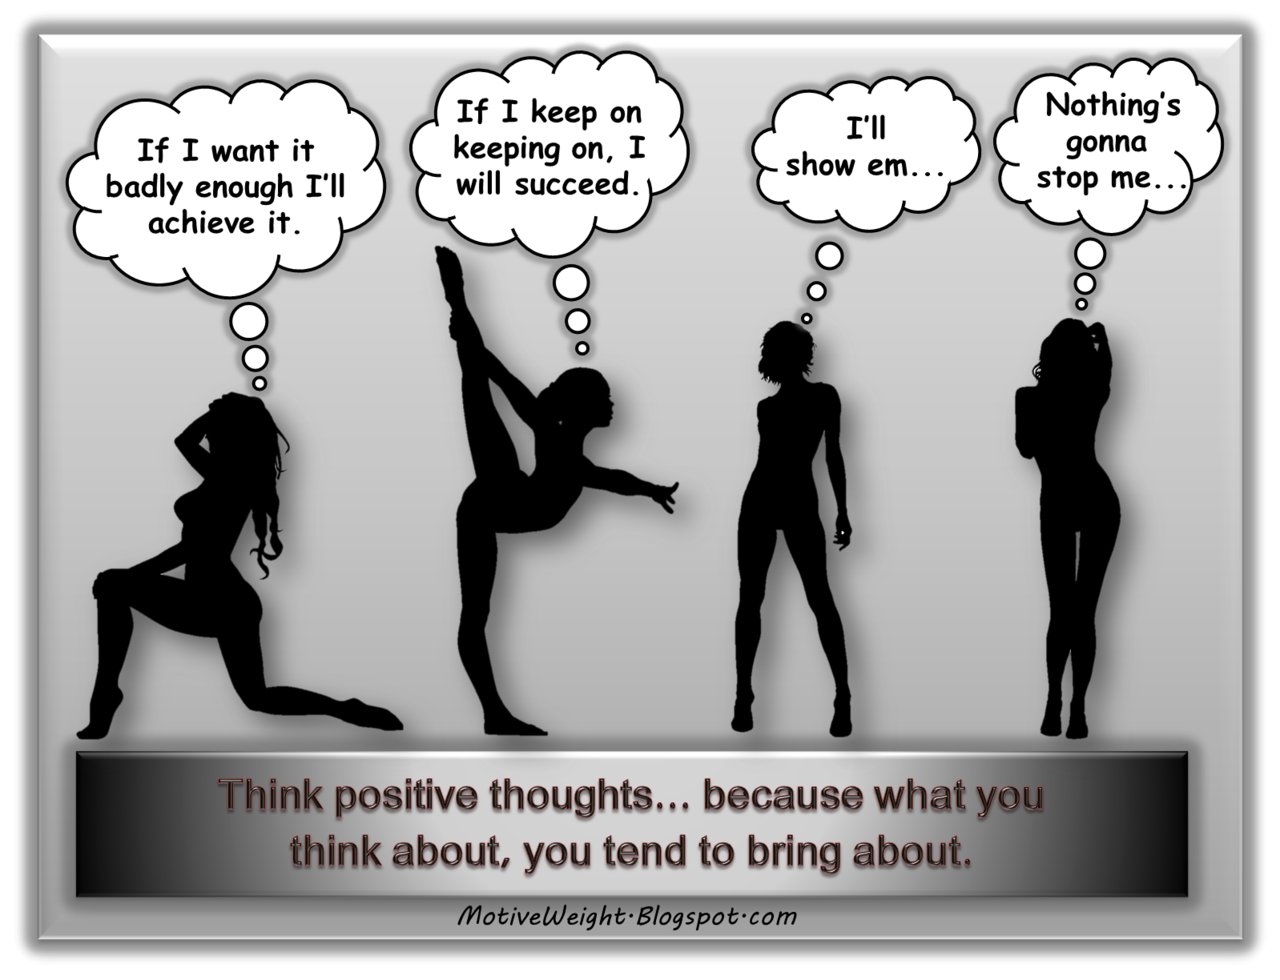 Free Download Weight Loss Motivation Quotes Funny Positive Thoughts Weight 1280x980 For Your Desktop Mobile Tablet Explore 49 Weight Loss Motivation Wallpaper Fitness Screensavers And Wallpaper Weights Wallpaper Submit